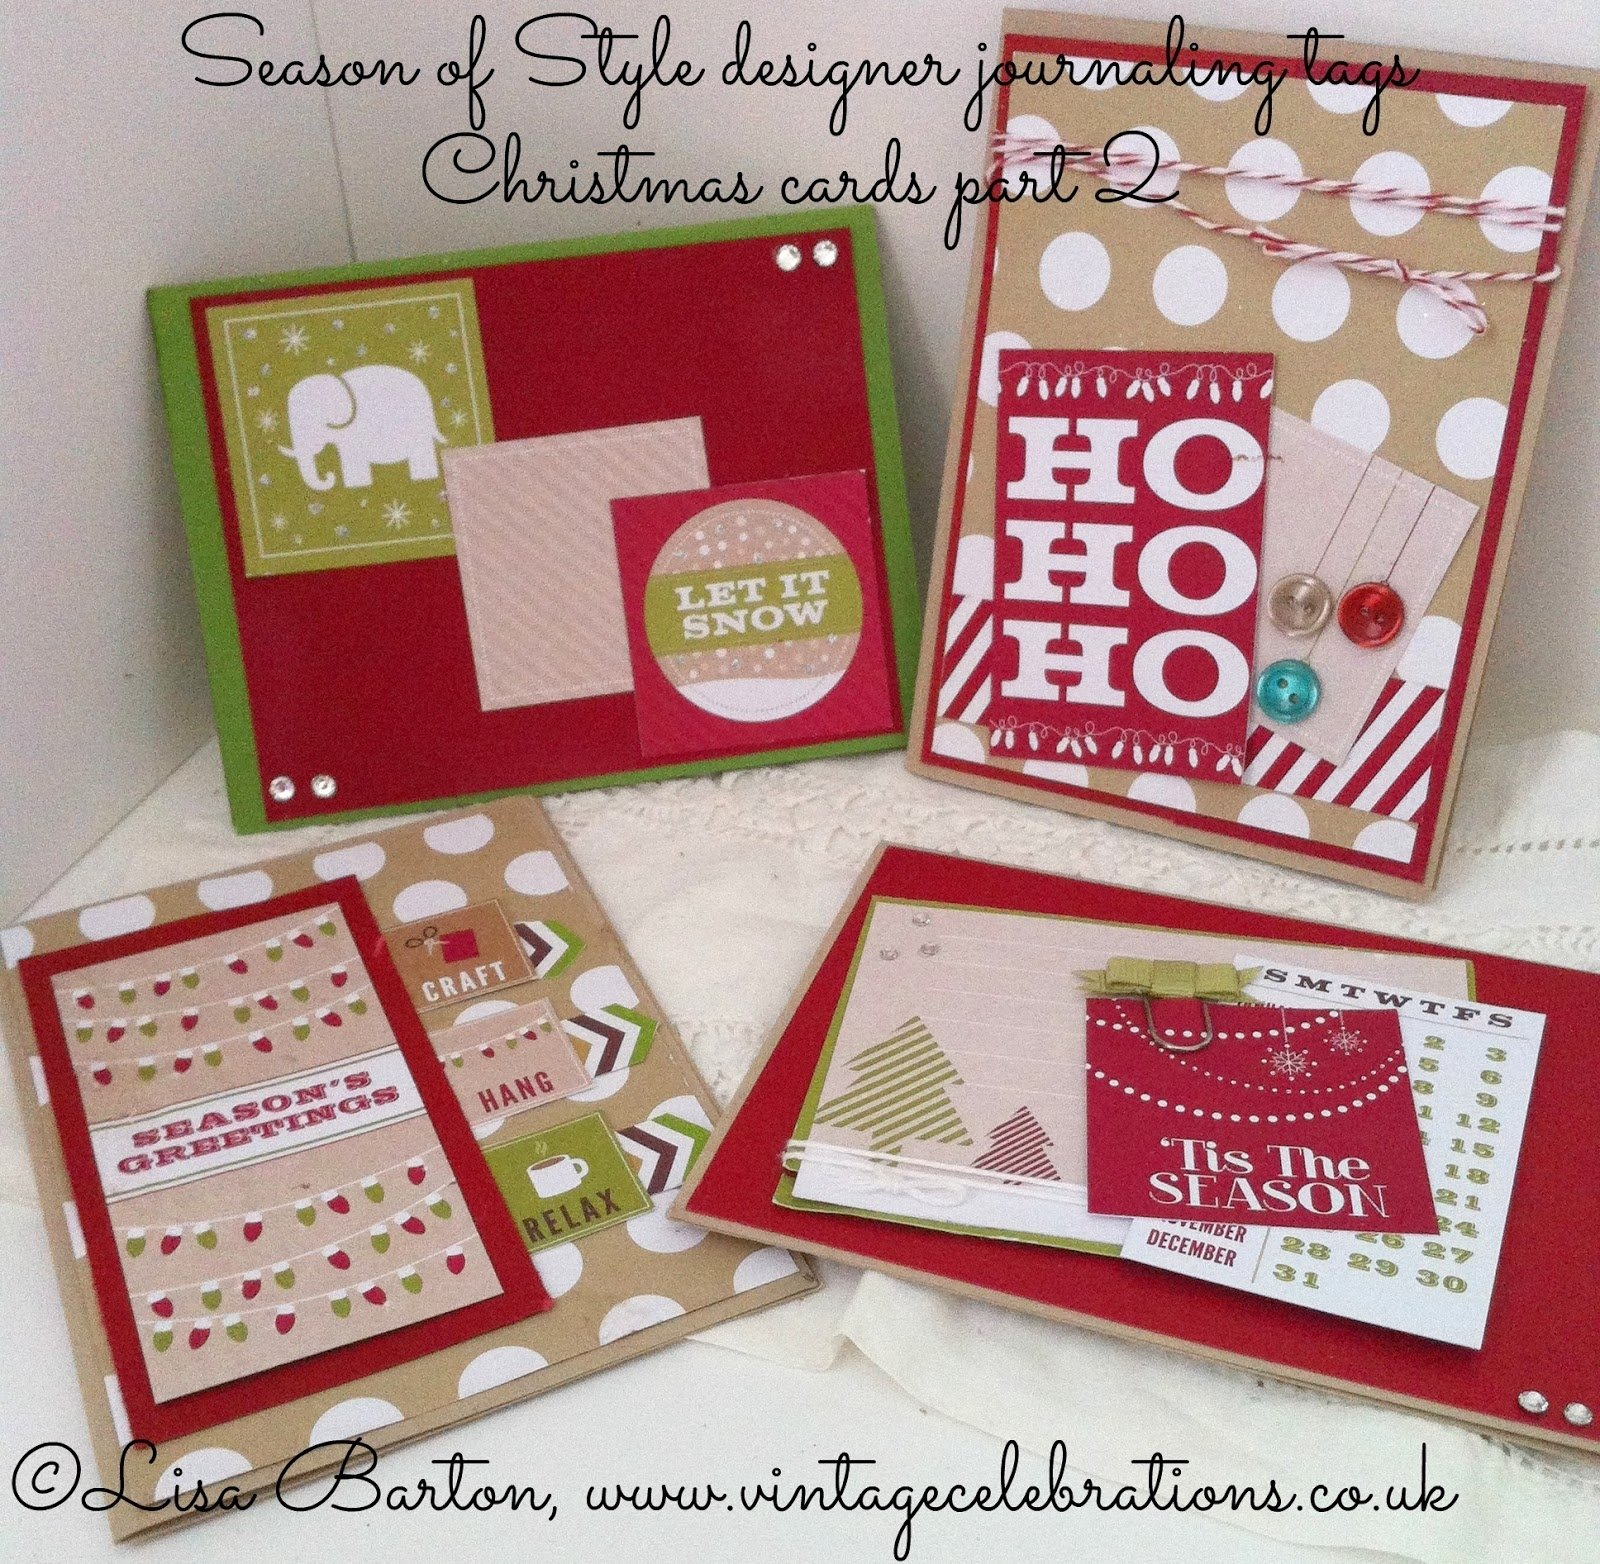 10 Lovely Handmade Craft Ideas To Sell tips techniques on how to sell your handmade crafts easily 2 2020